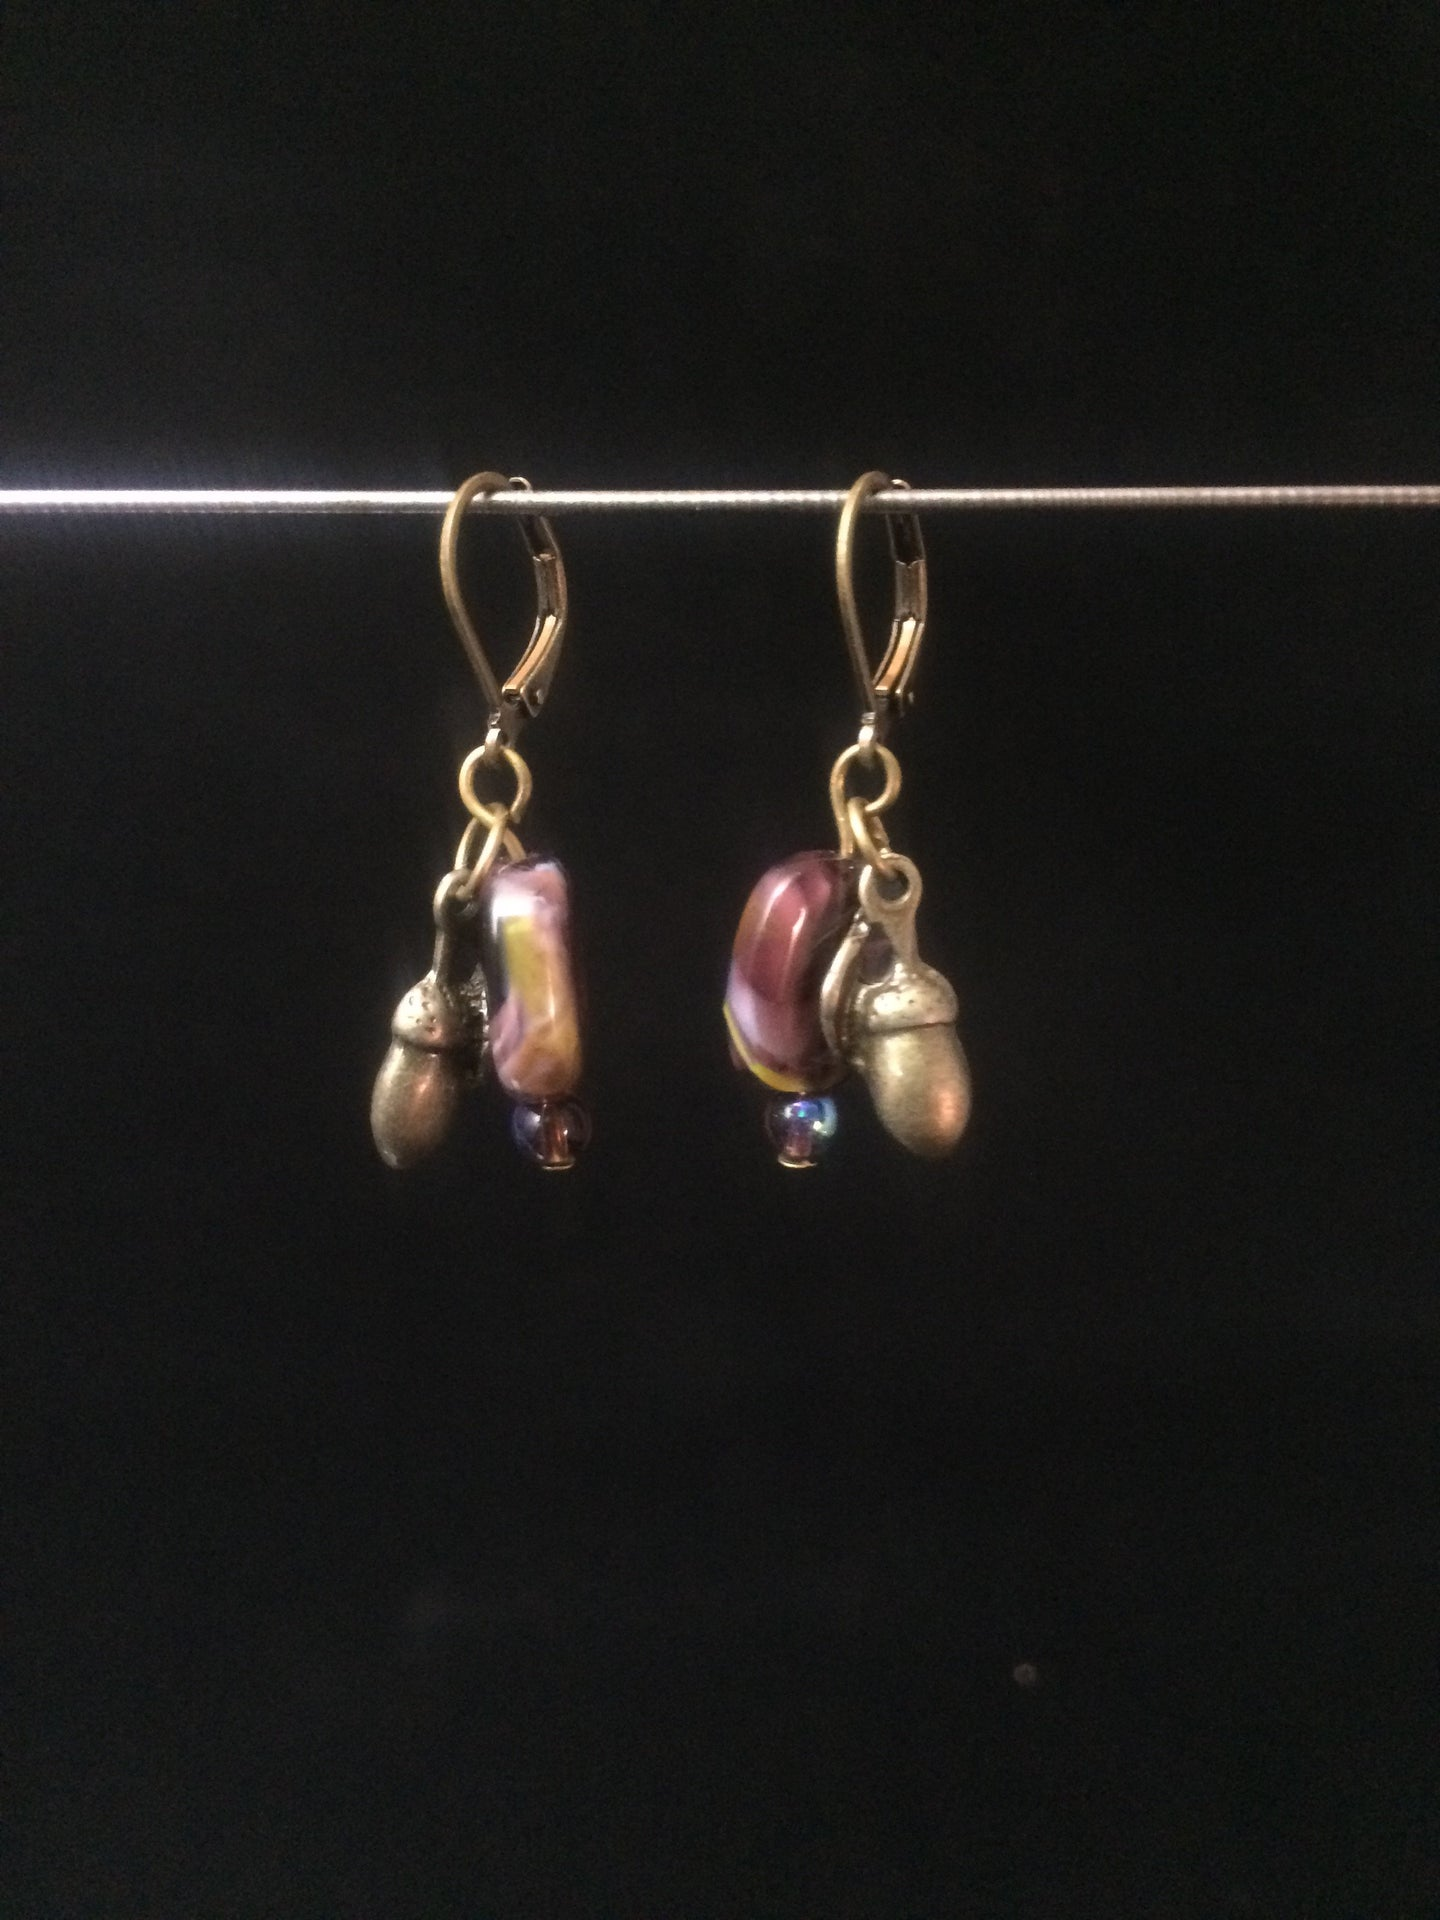 Leverback Earrings made from purple blown glass beads that have swirls and metal acorn charms.åÊ Round glass pearls are added for accent.